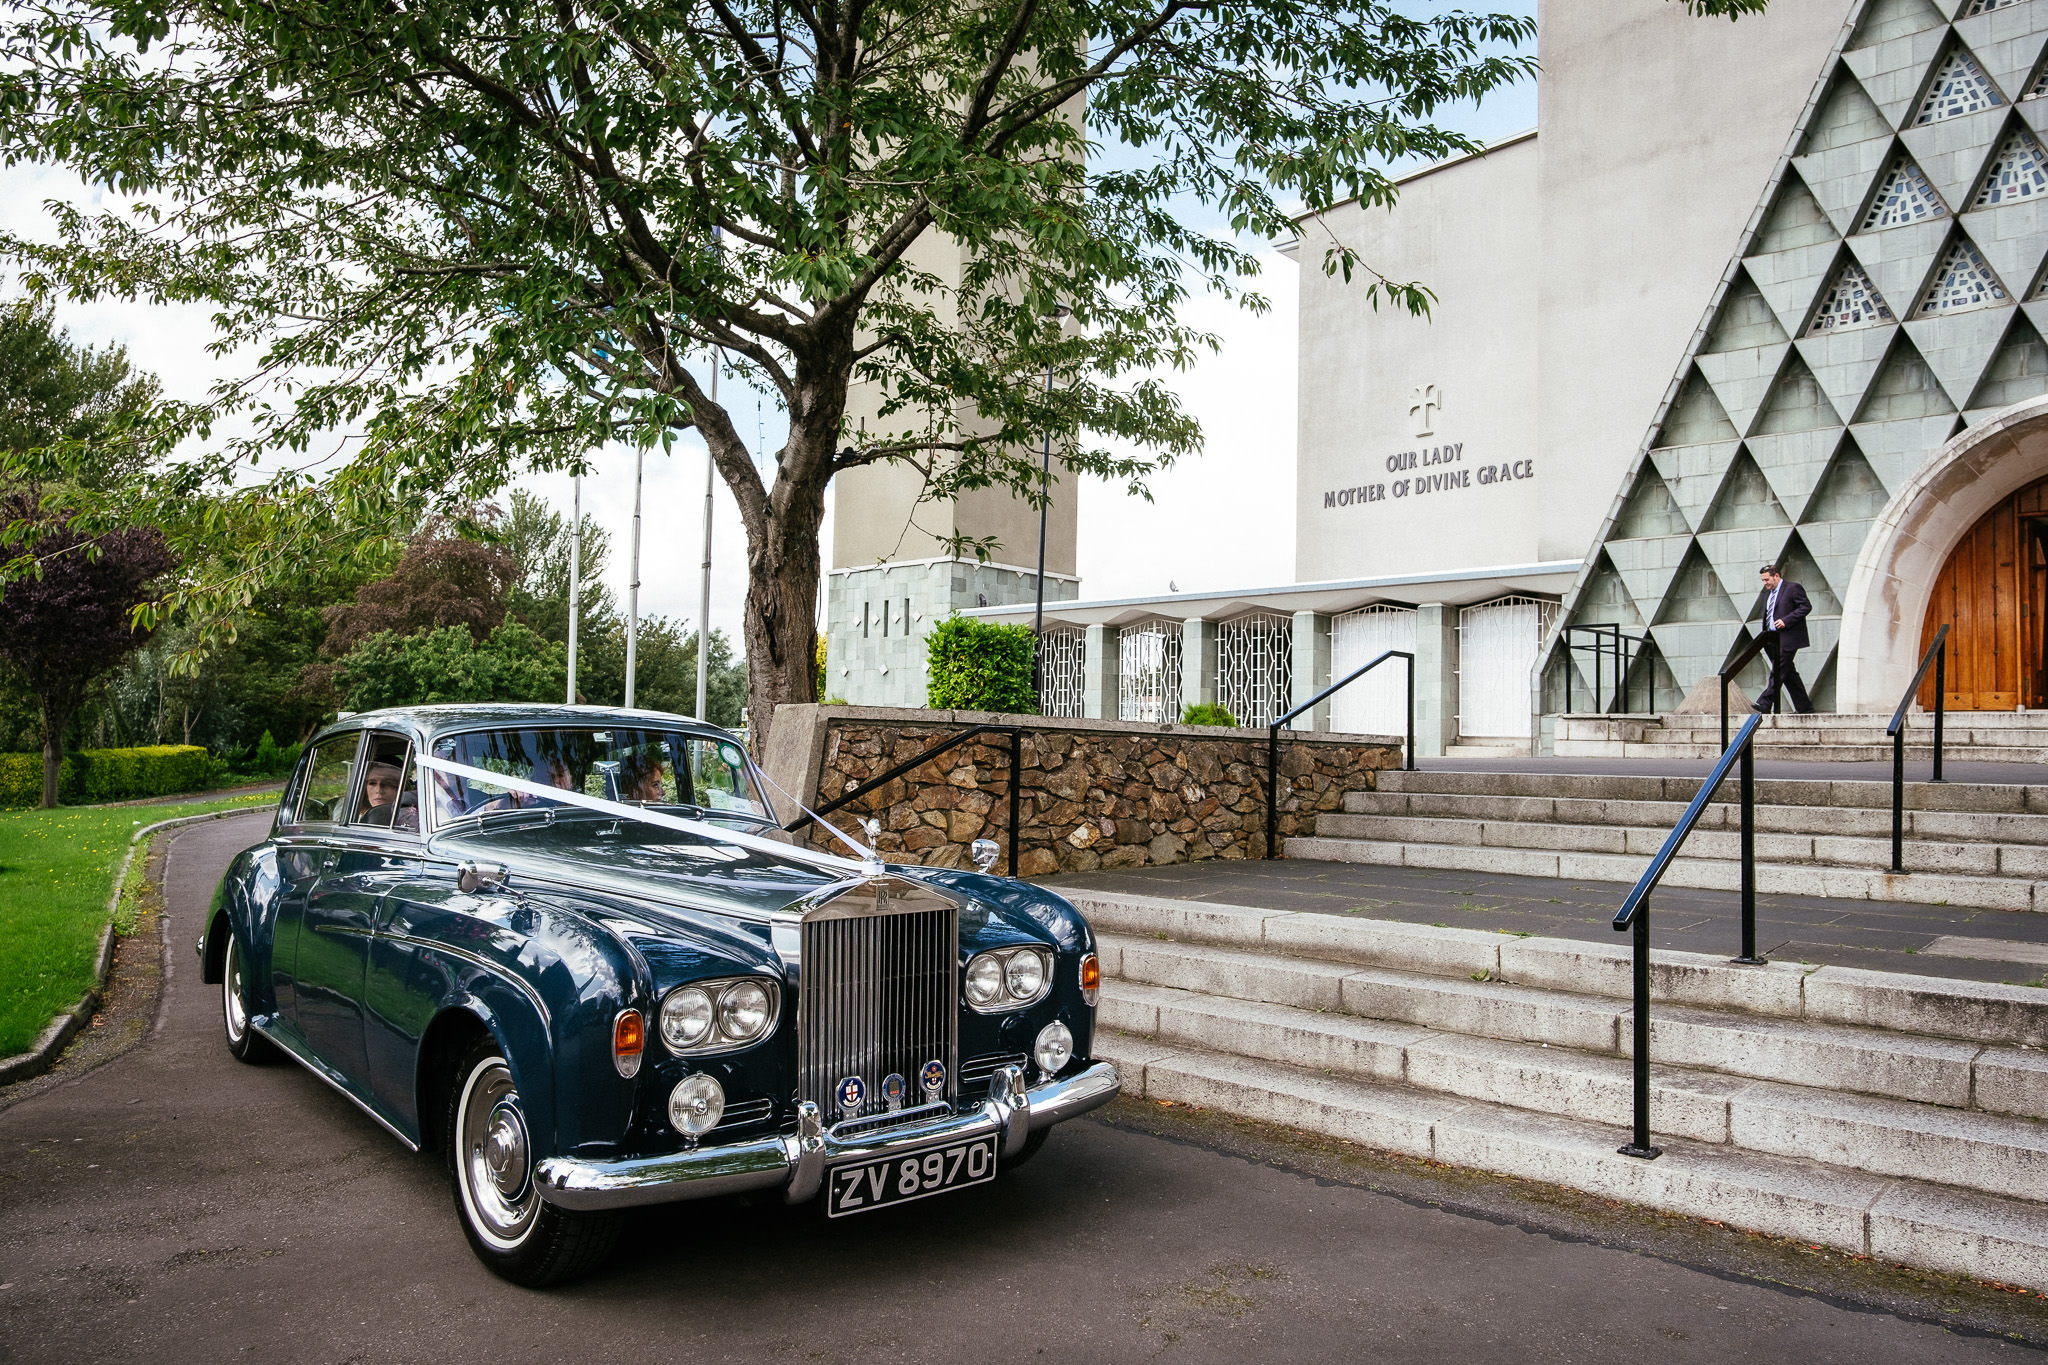 wedding car outside Our Lady Mother of Divine Grace Church in Raheny